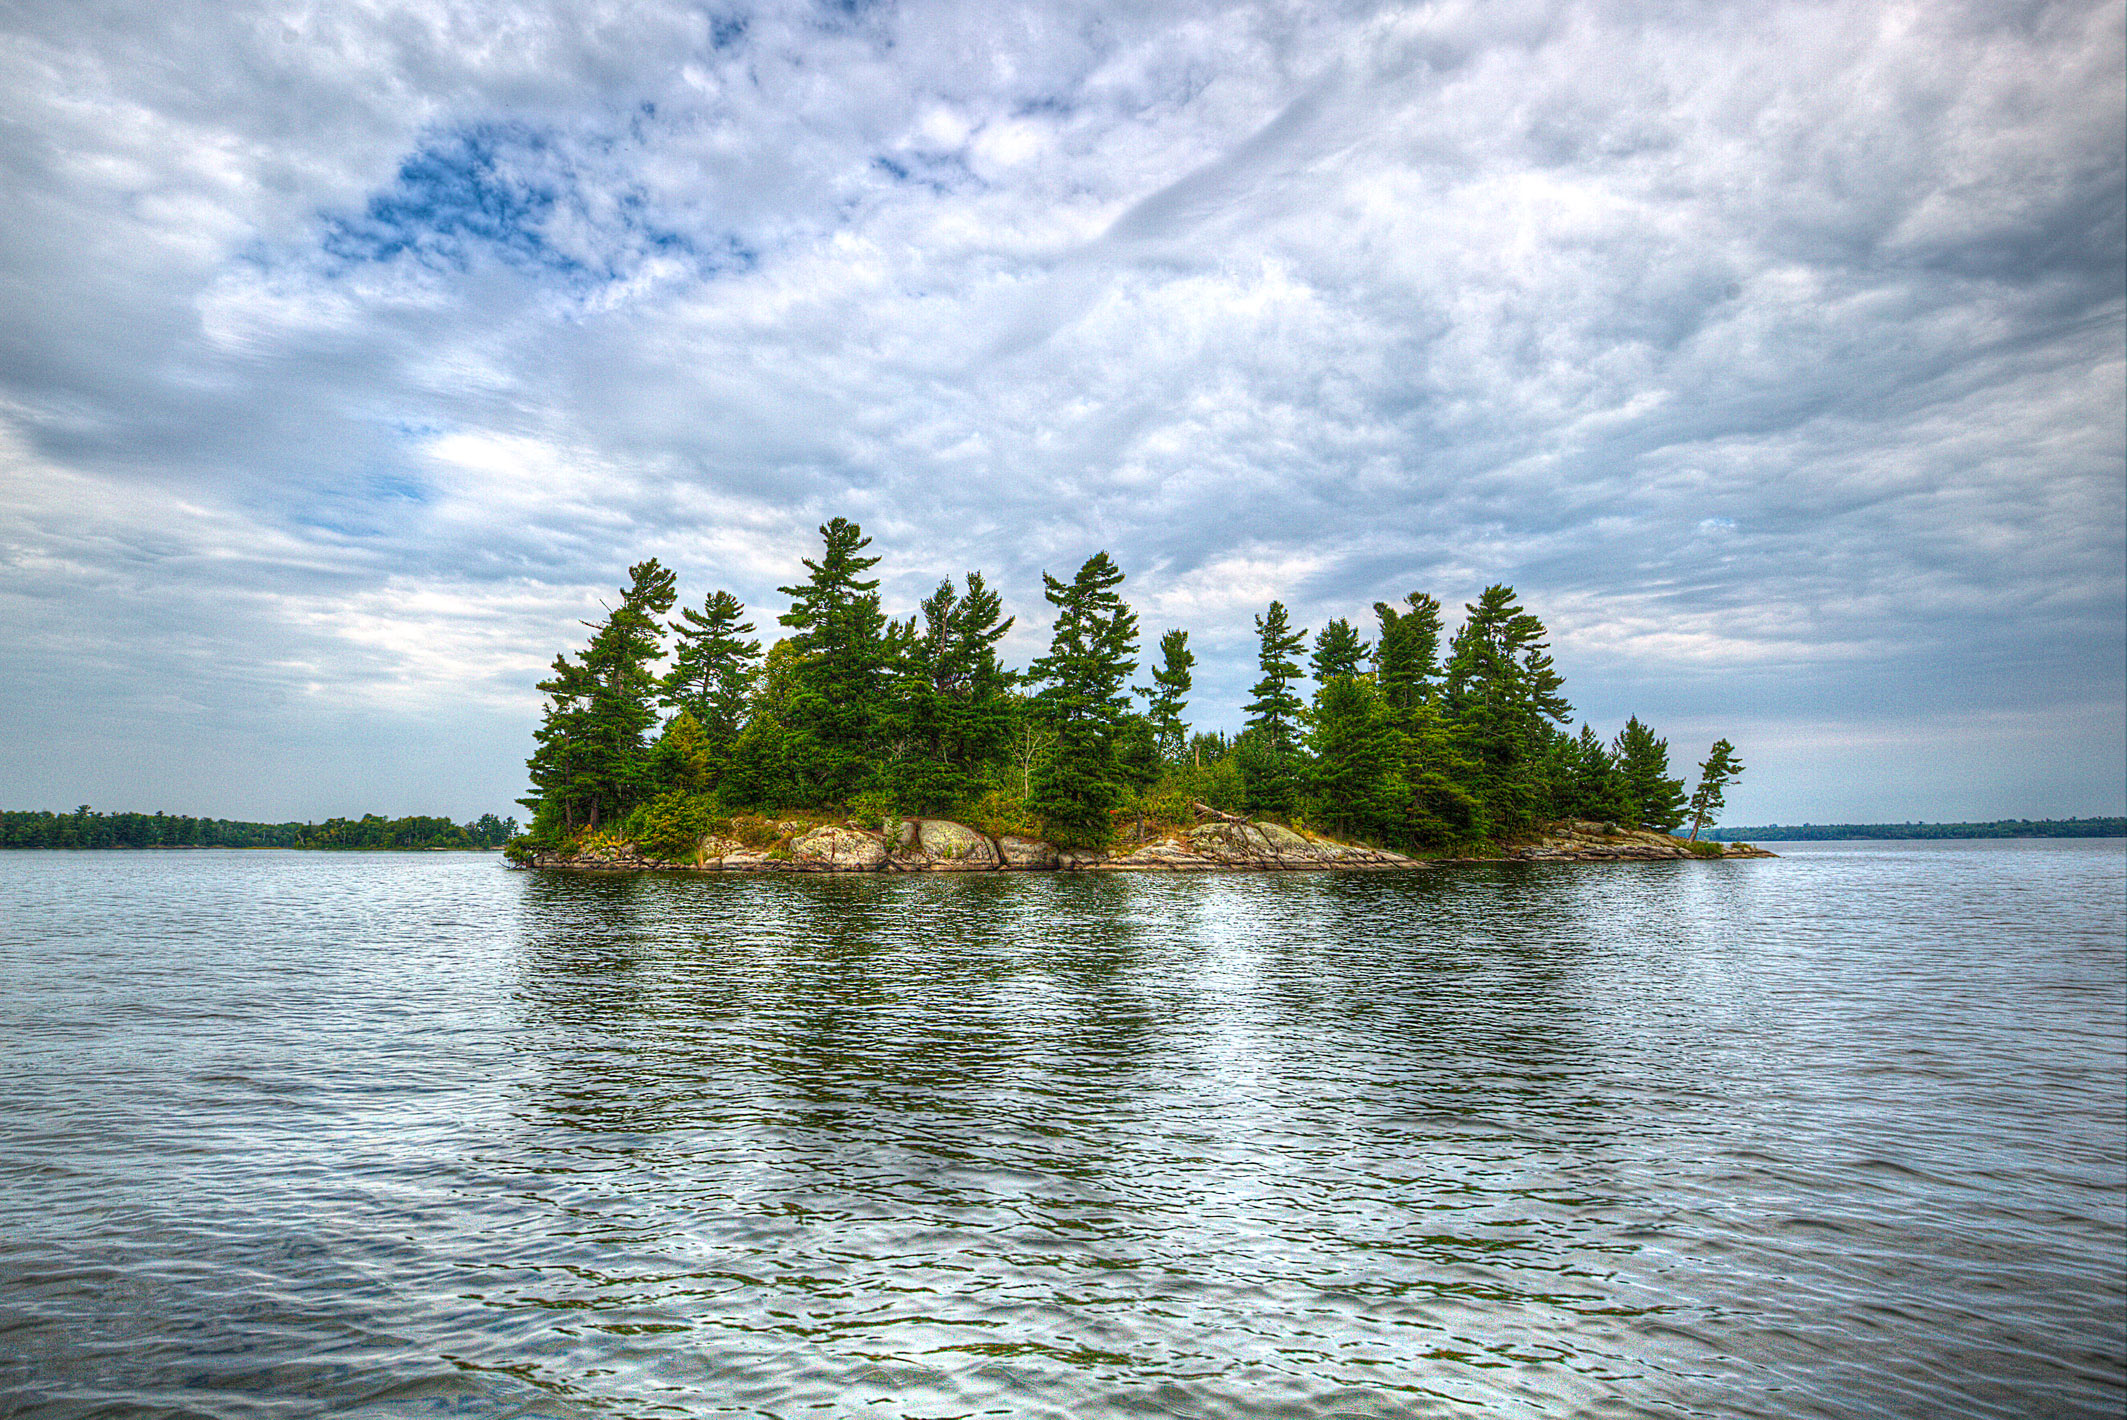 One of many islands in Voyageurs National Park